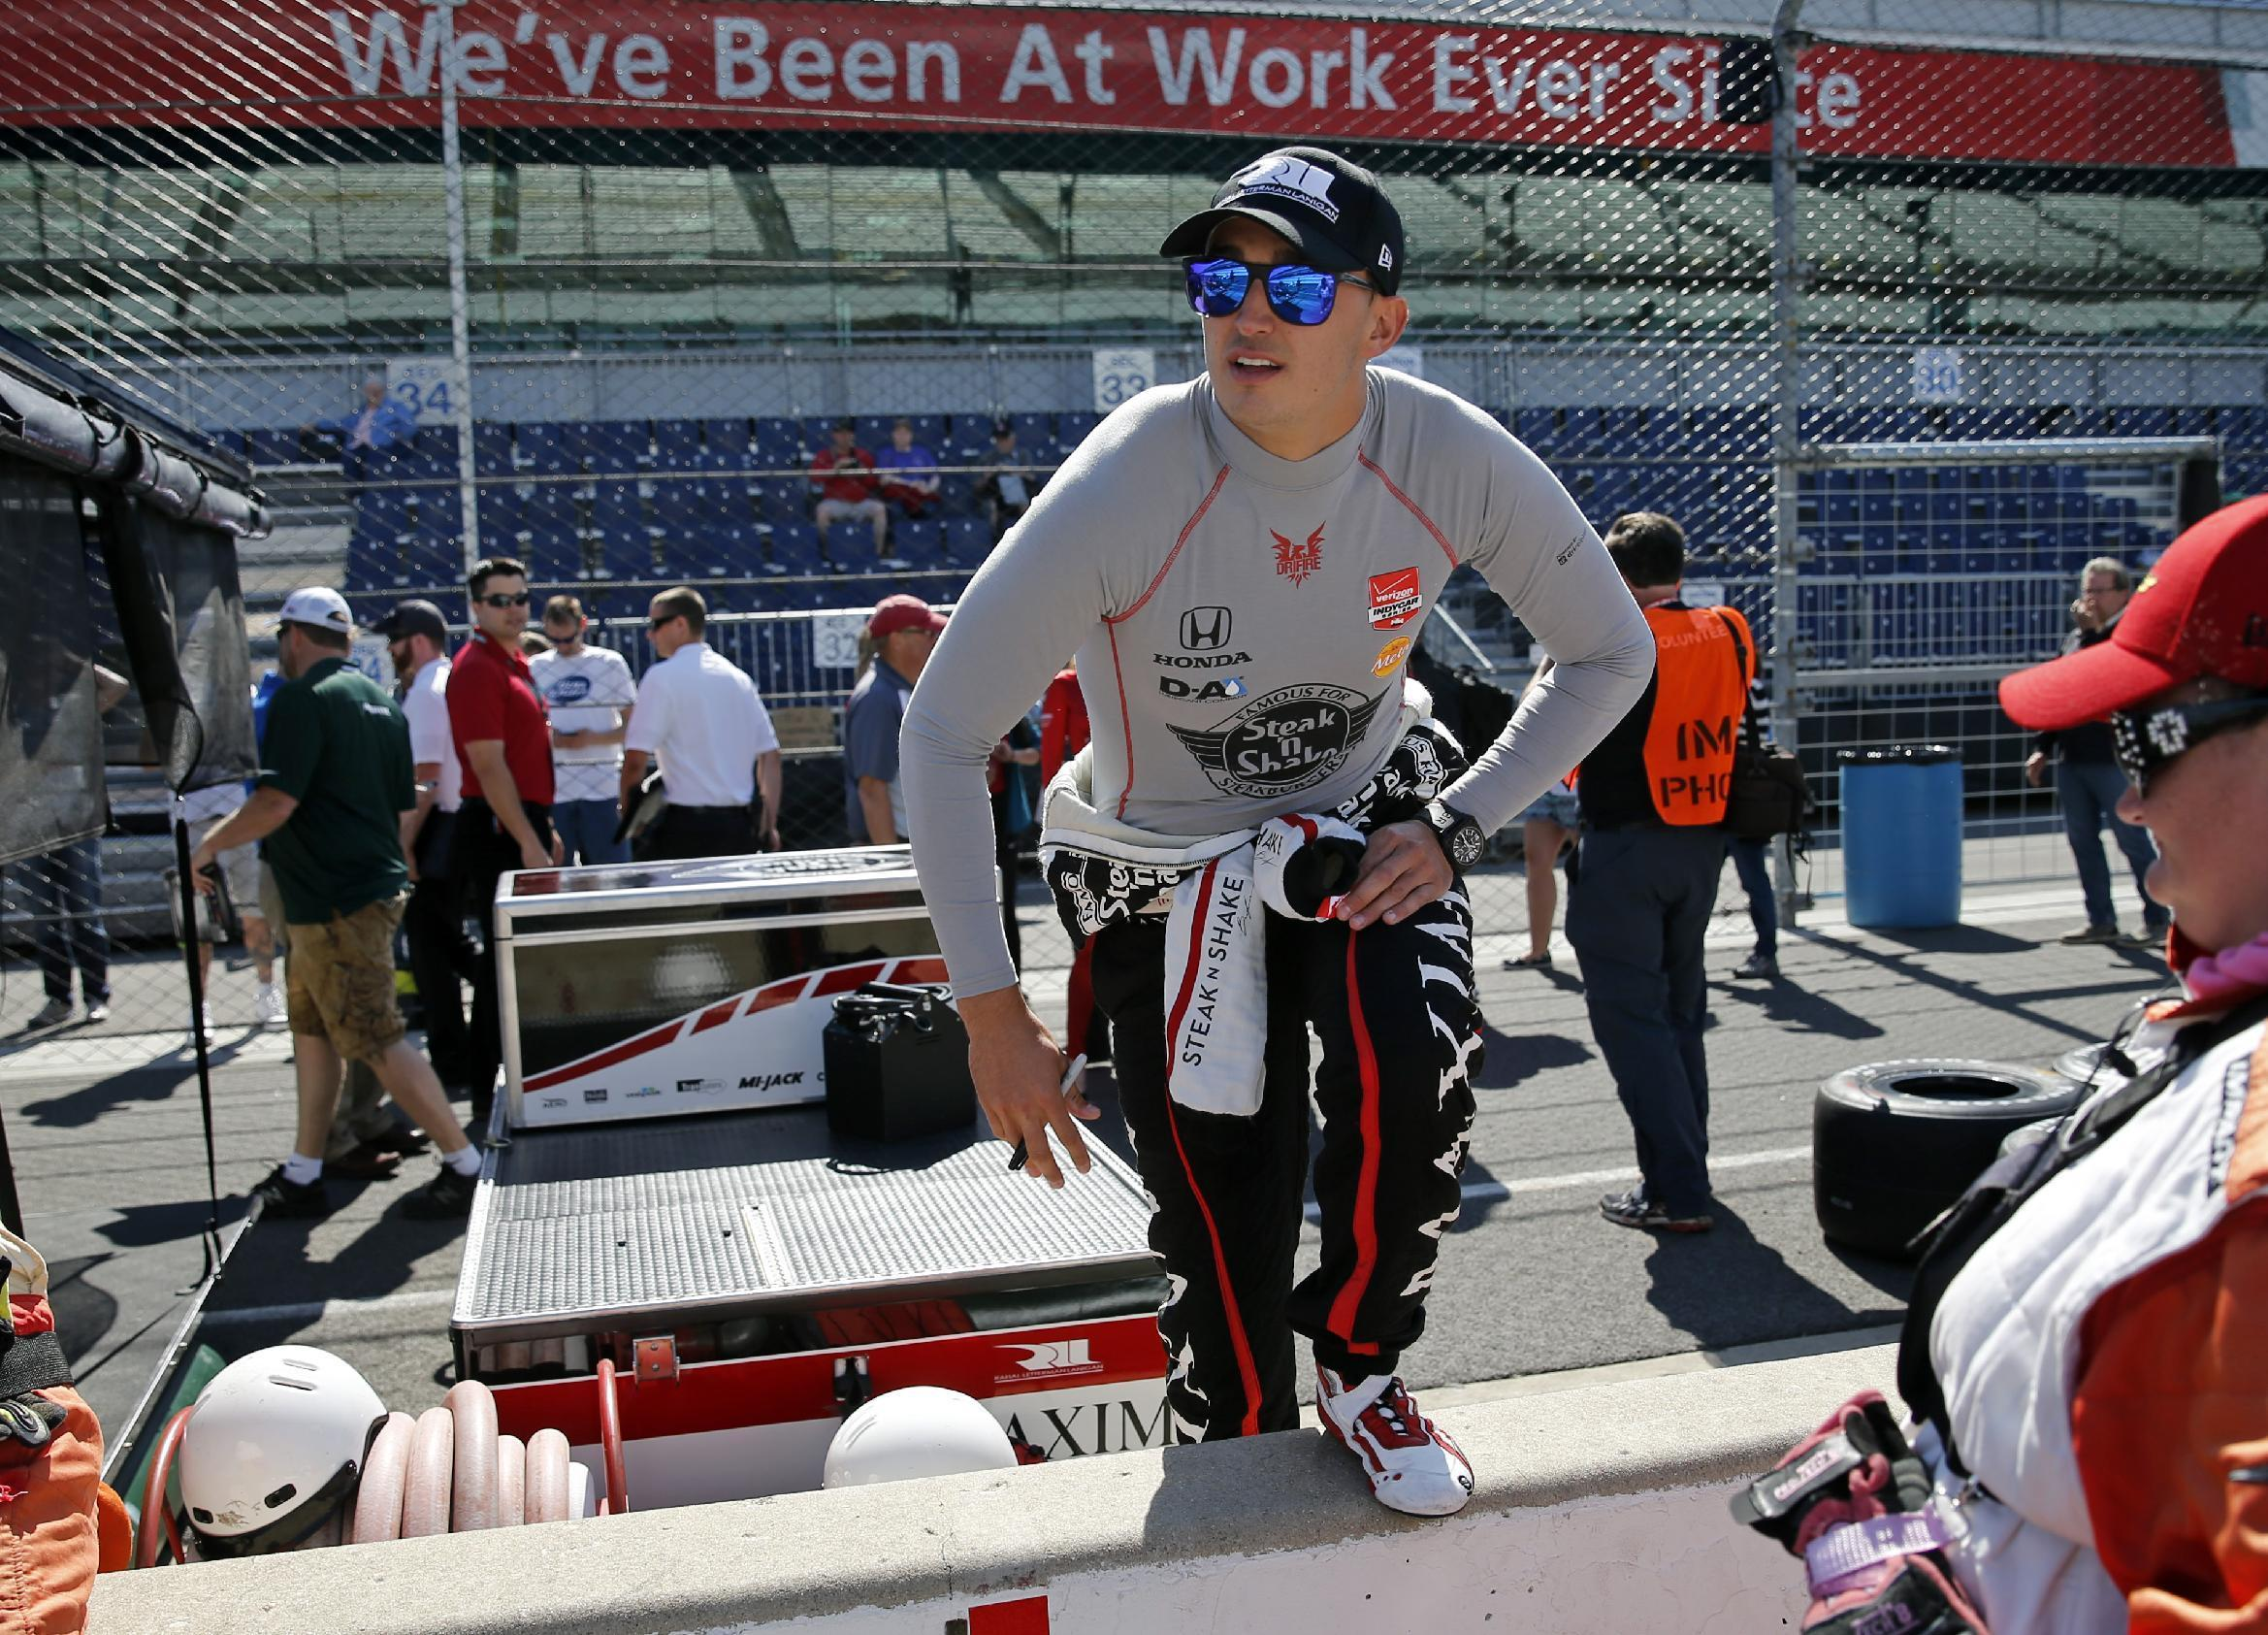 Rahal finally getting results, carrying standard for Honda